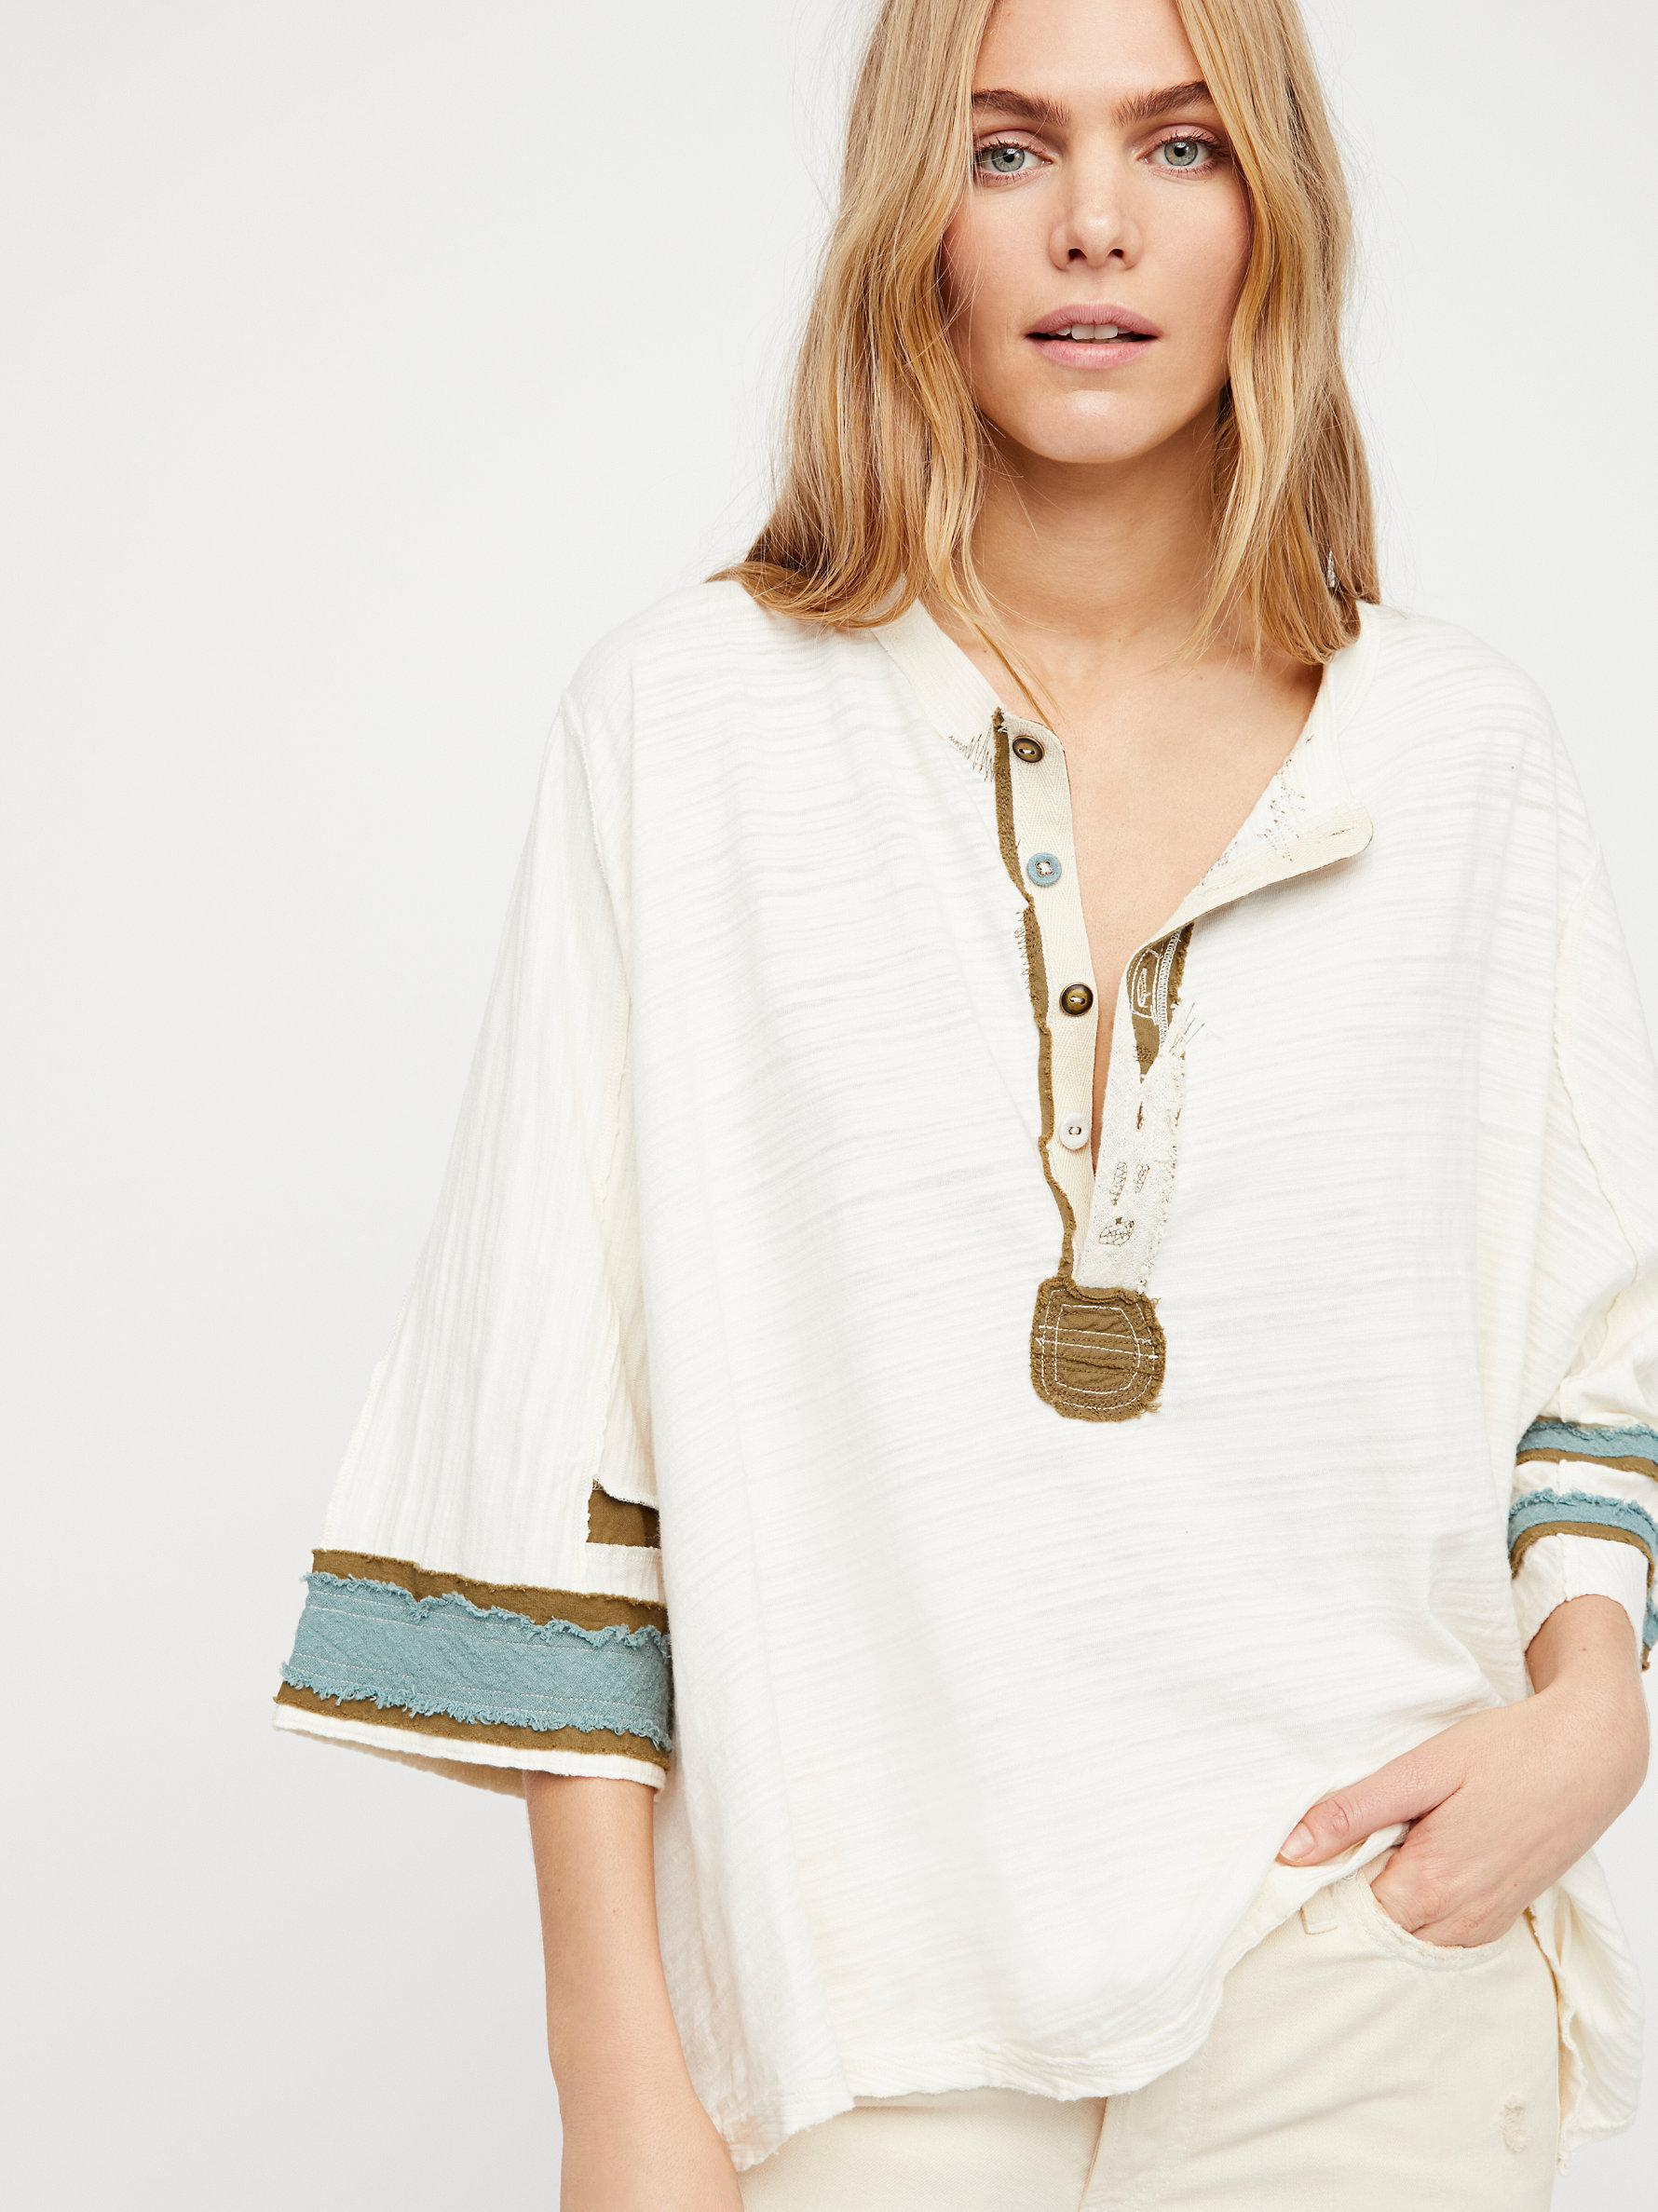 Great Deals Cheap Price Professional  Second Wind Henley Top - Ivory Free People Best Deals zwRA6Lx93B